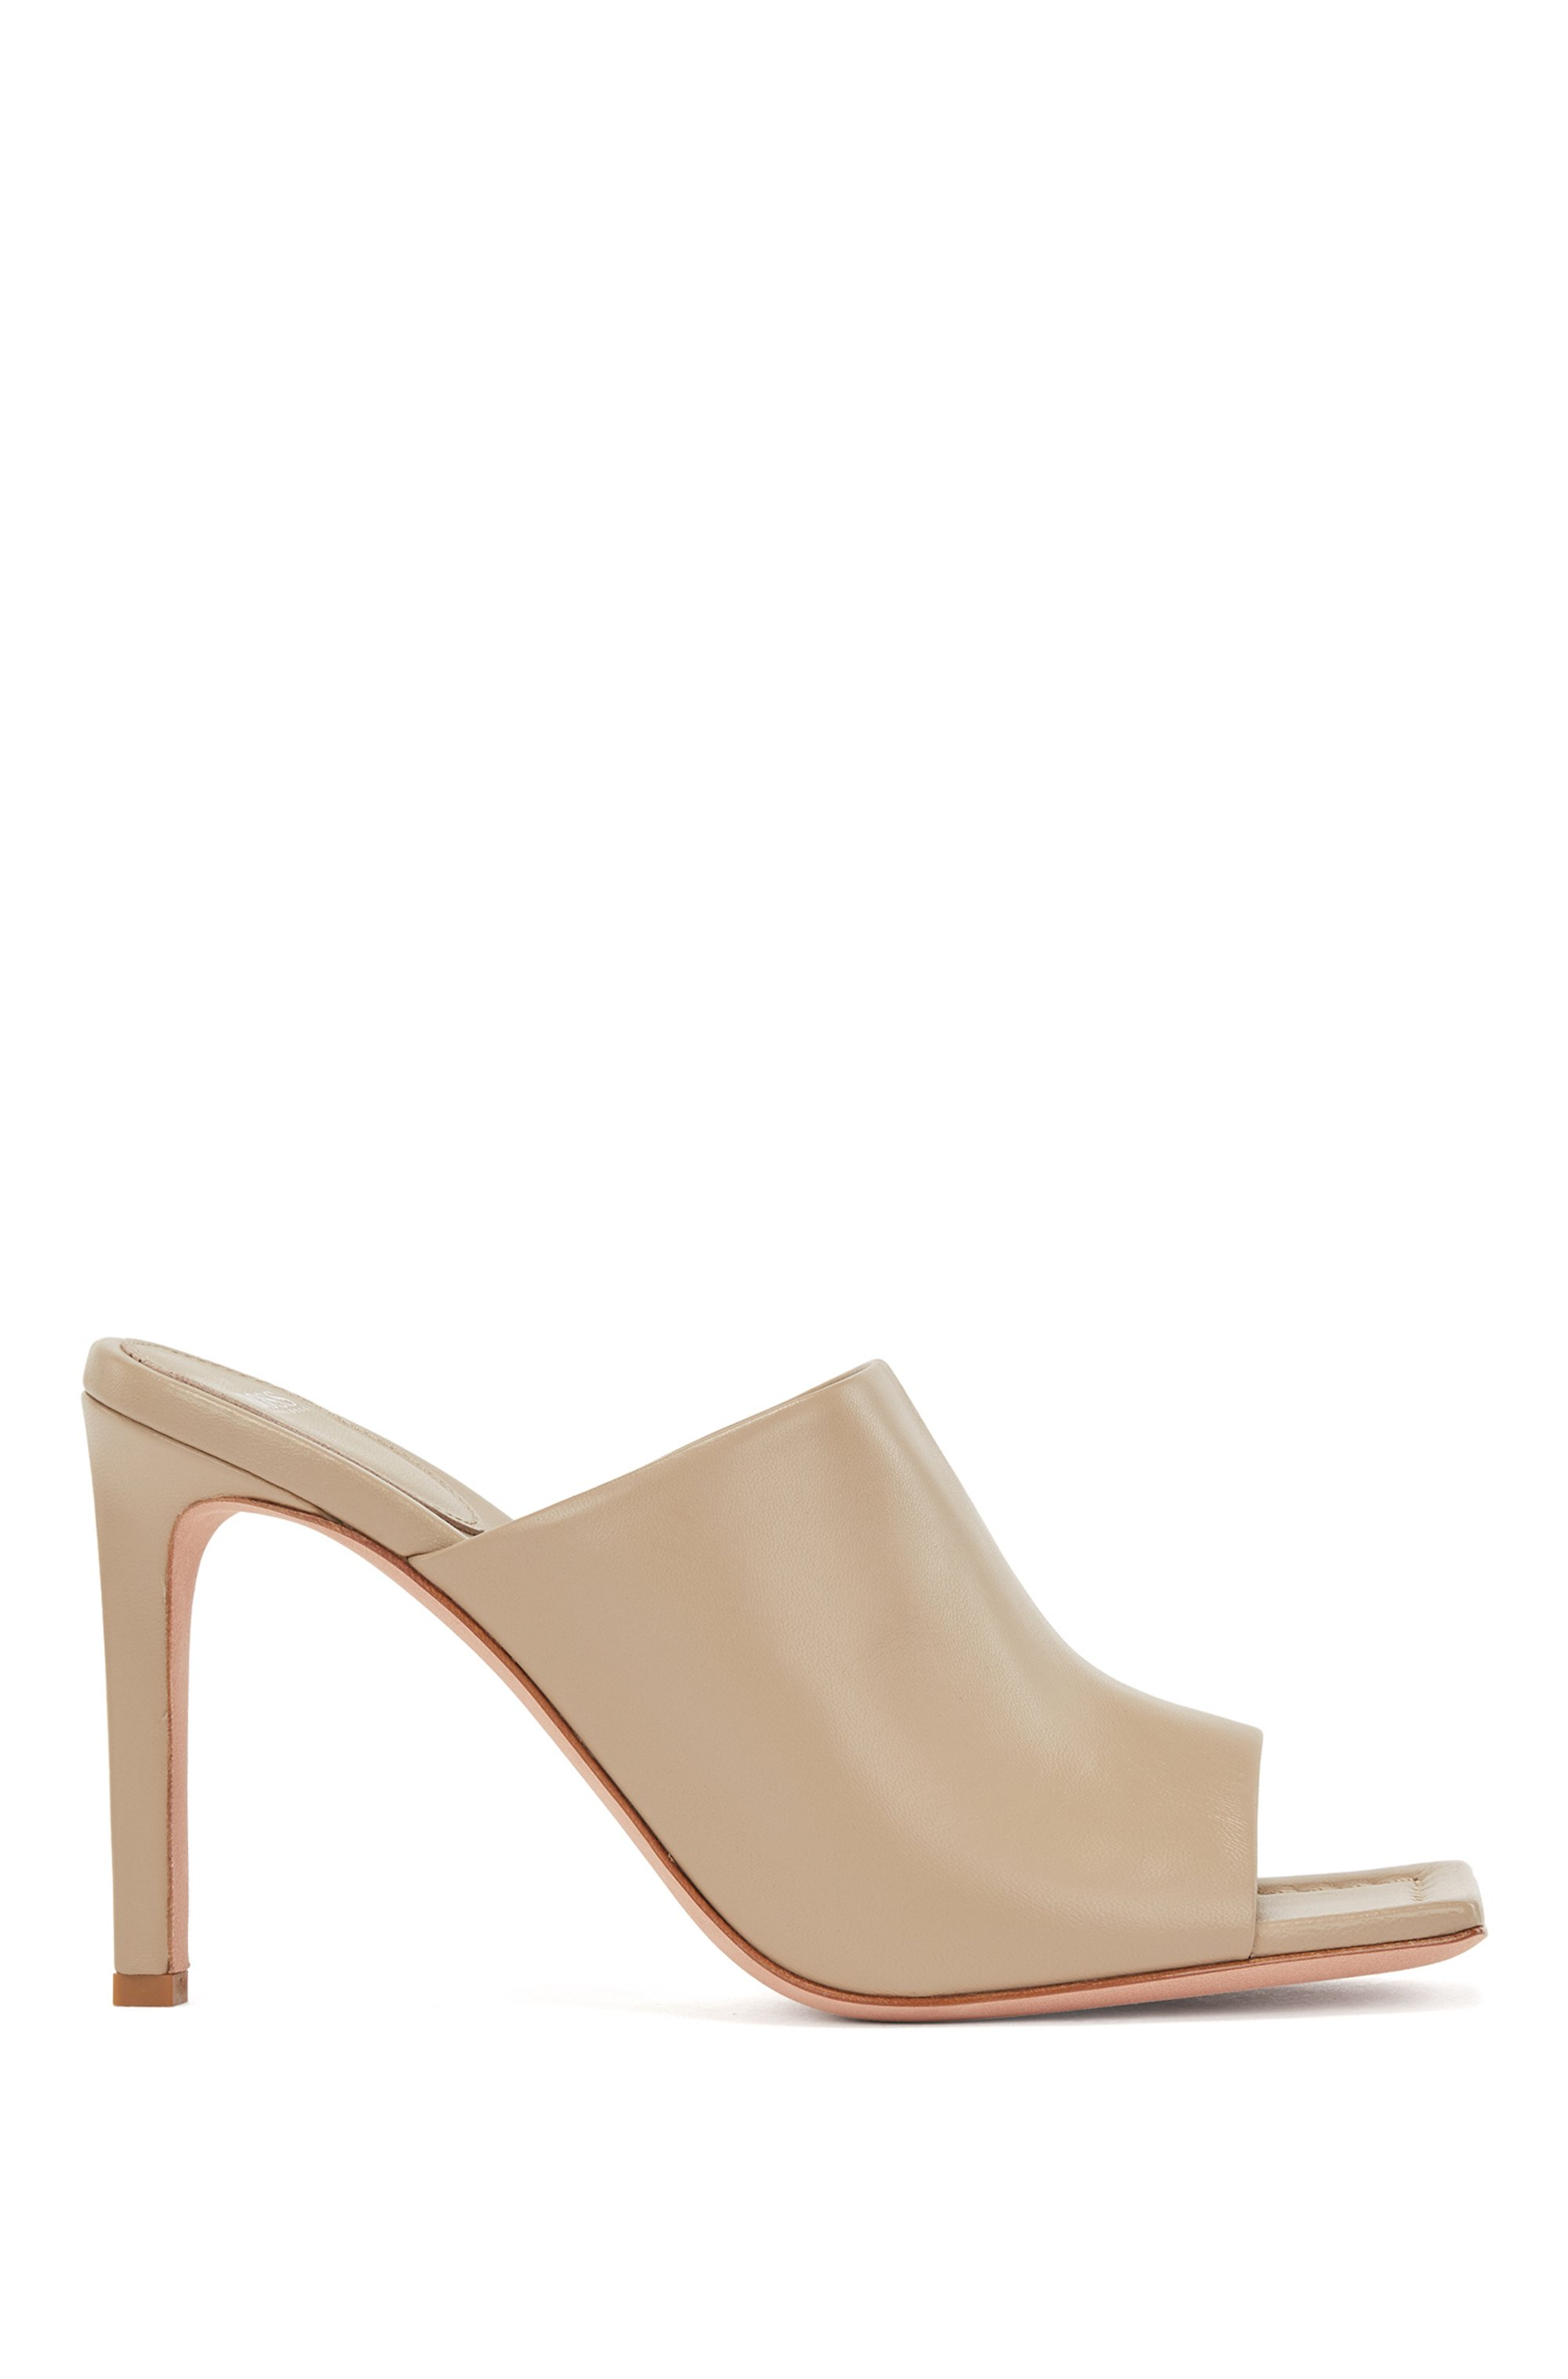 High-heeled mules in Italian leather, Beige